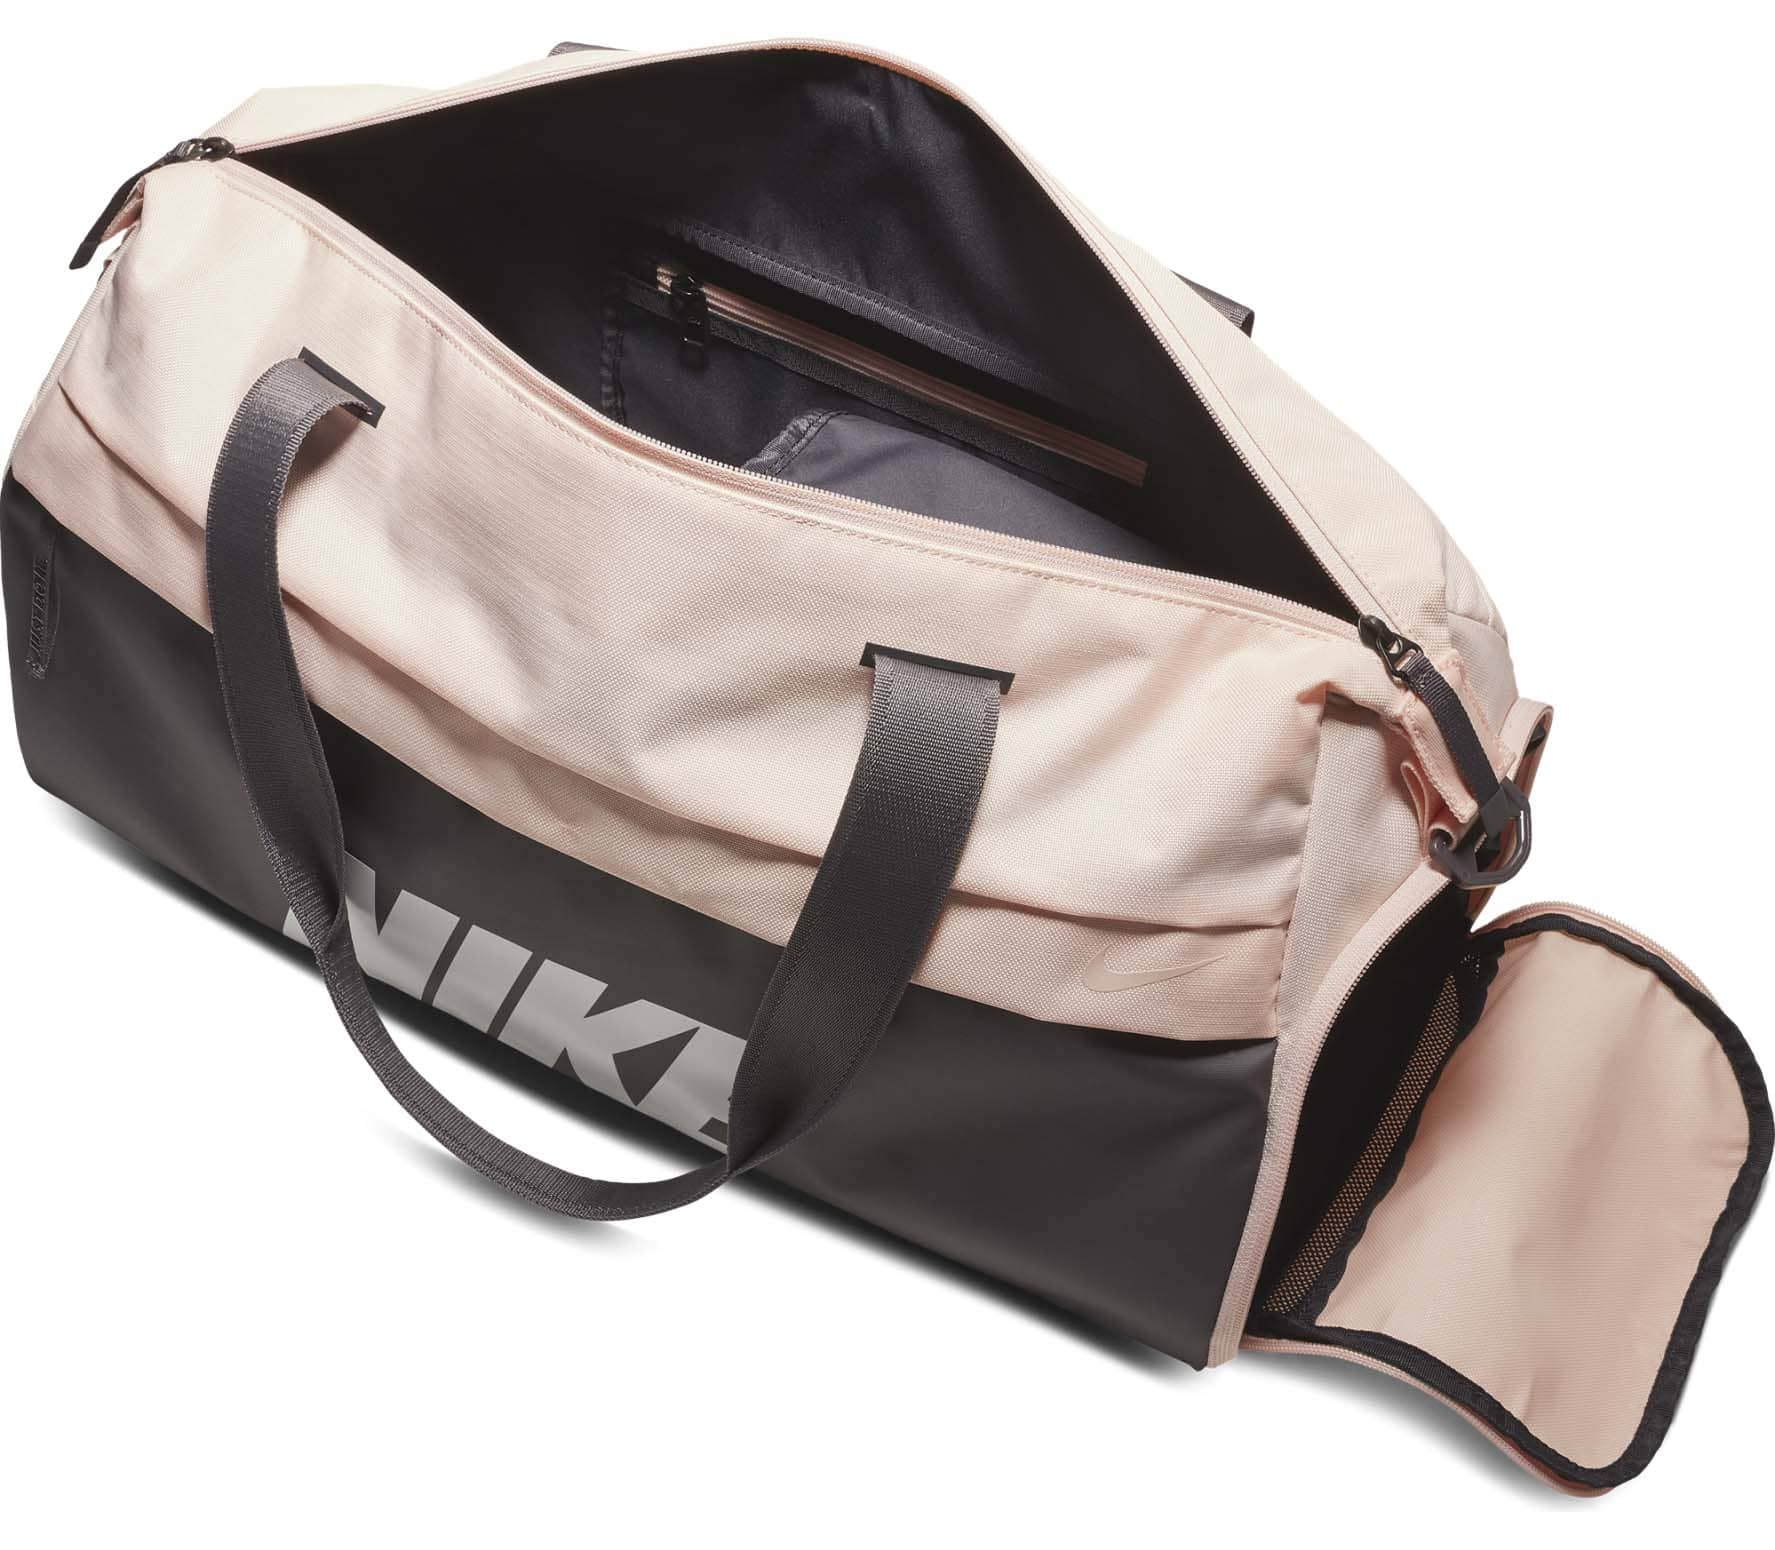 Nike - Radiate women's training bag (pink)